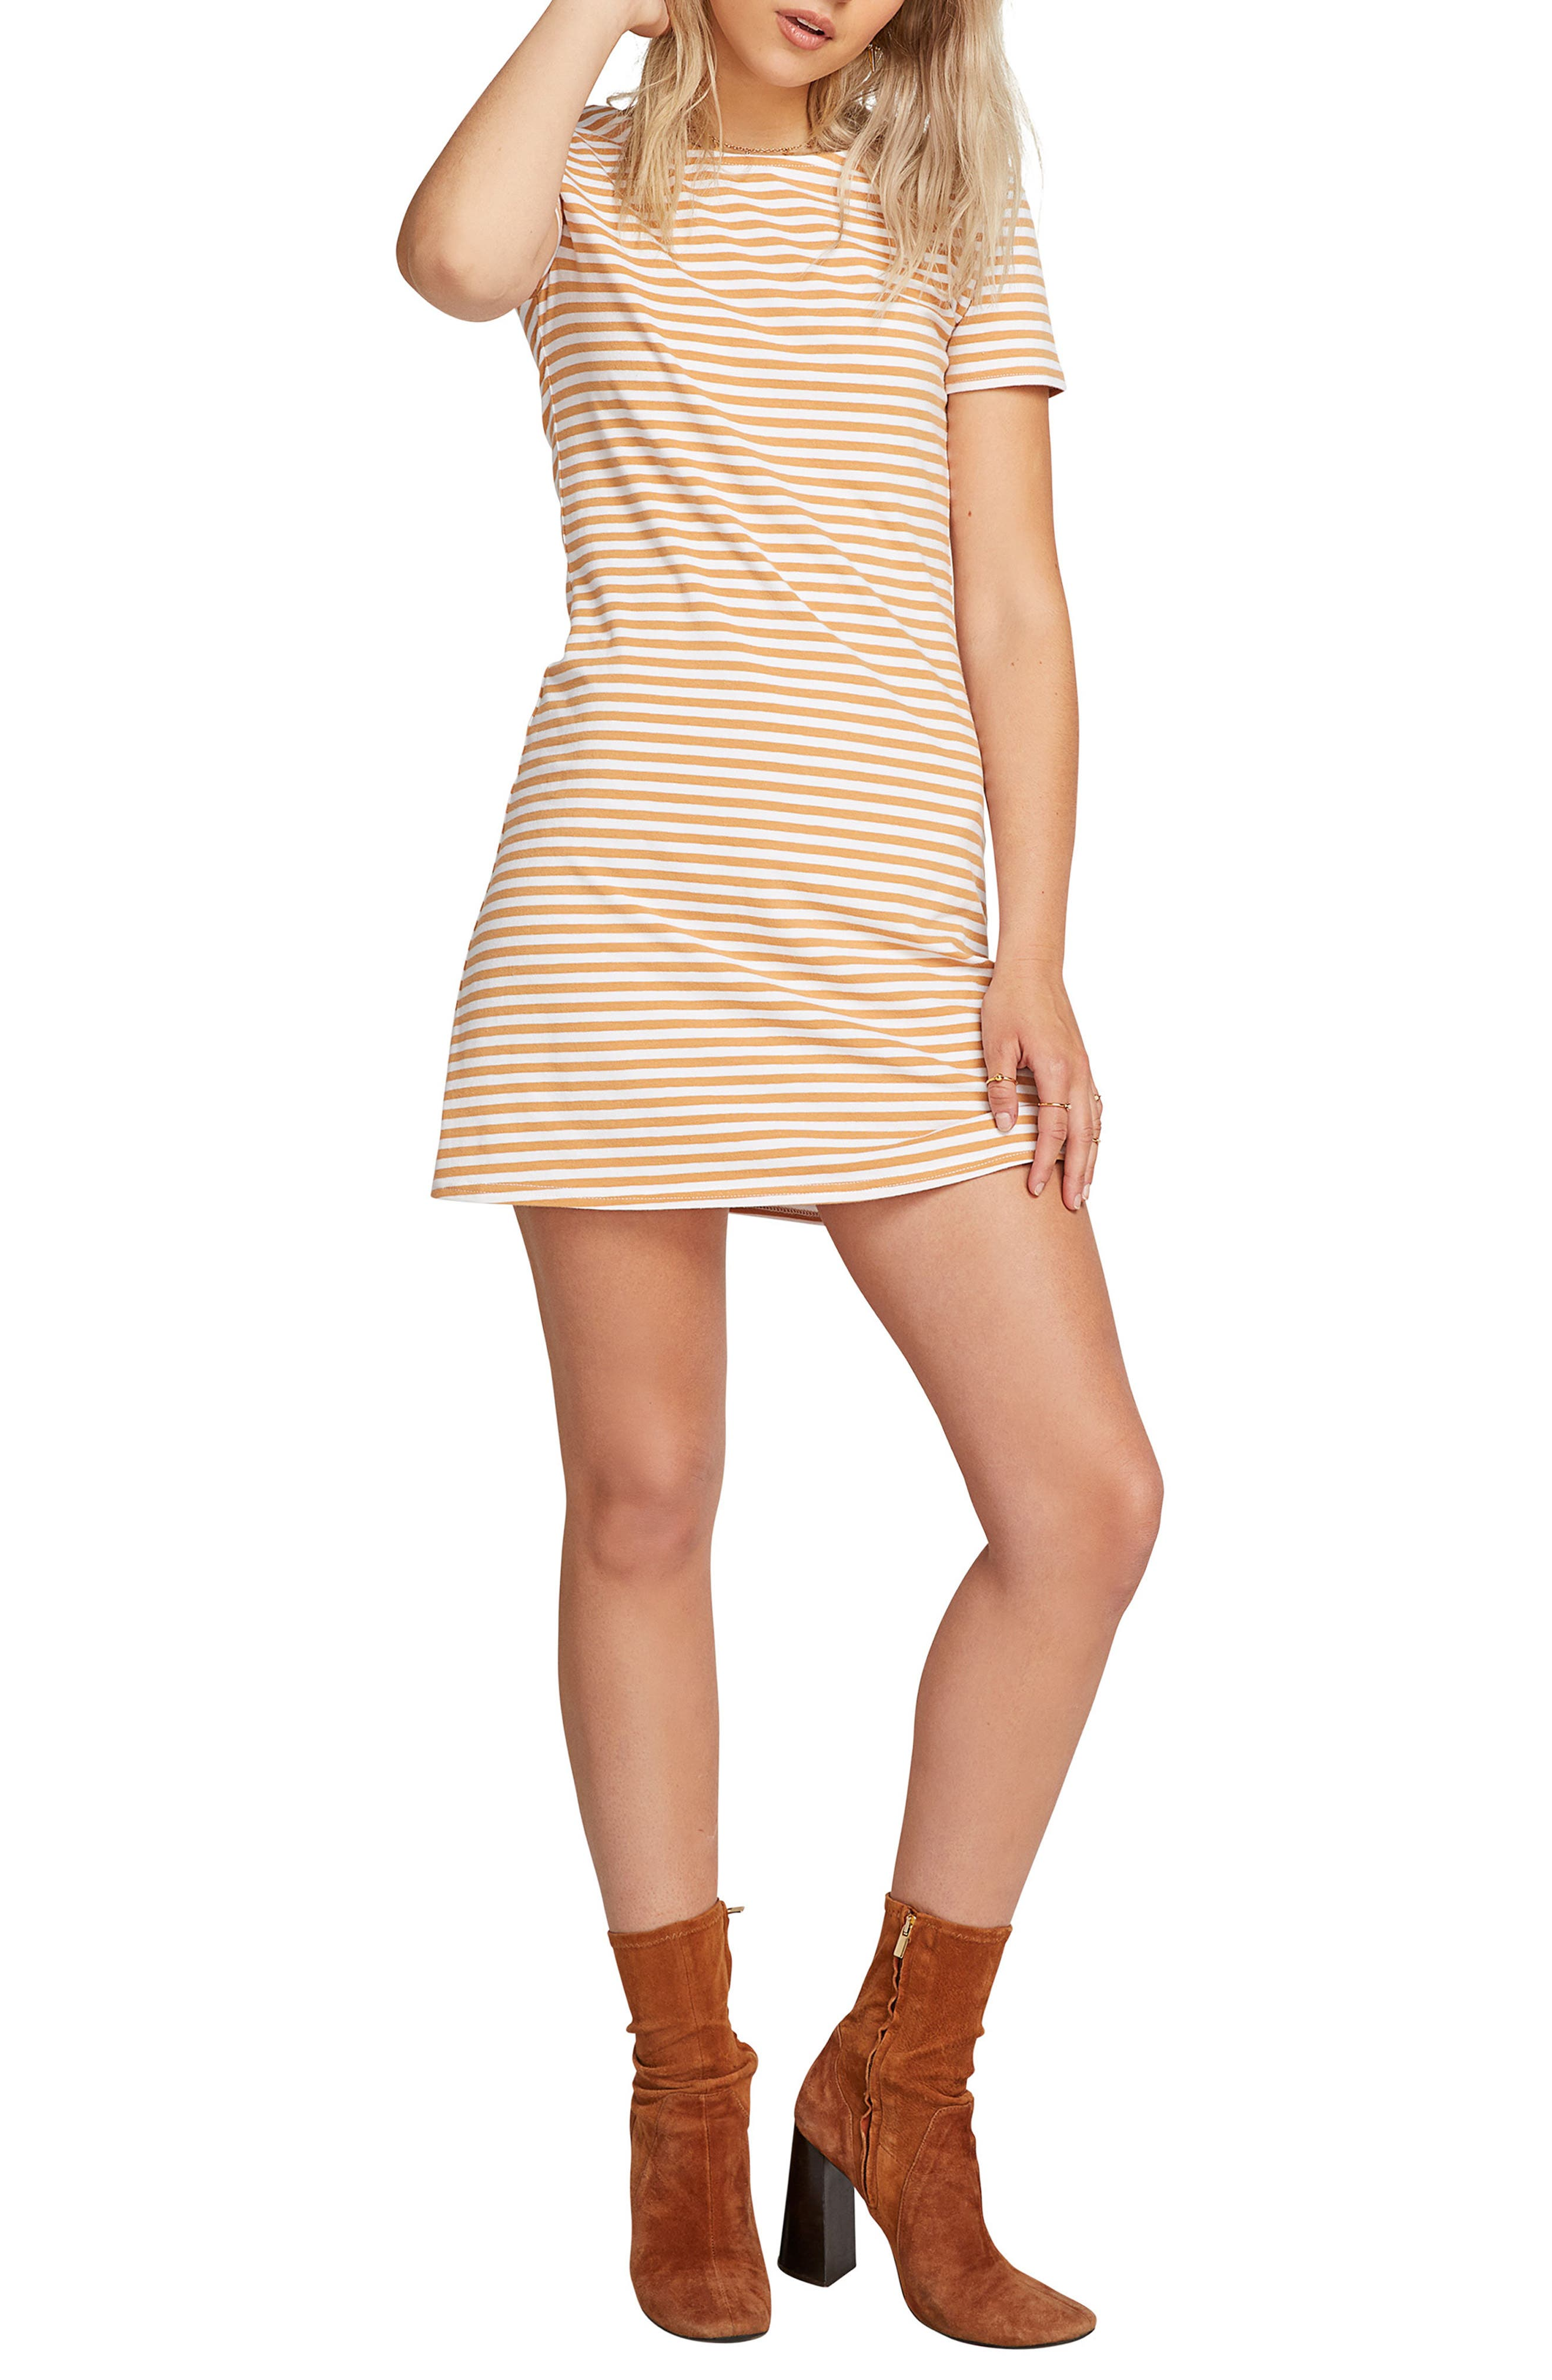 VOLCOM, Looking Out Stripe T-Shirt Dress, Main thumbnail 1, color, 250